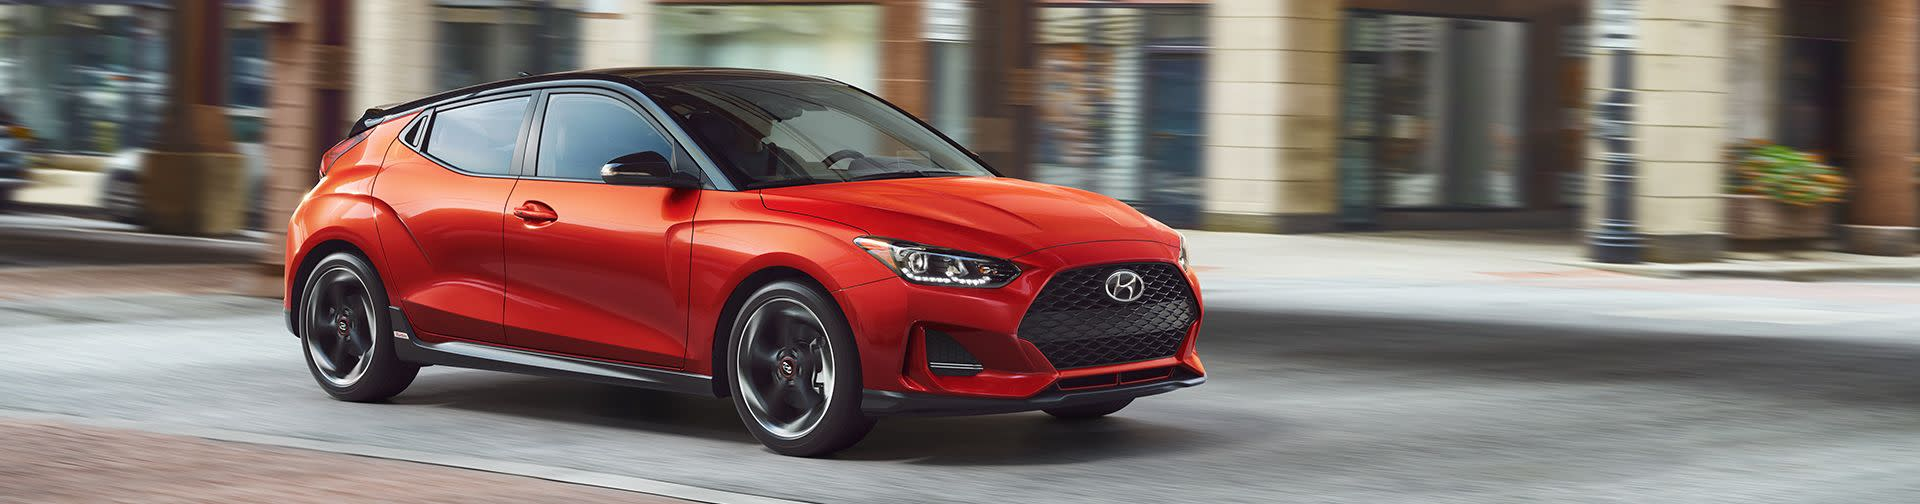 2019 Hyundai Veloster Turbo for Lease near College Park, MD